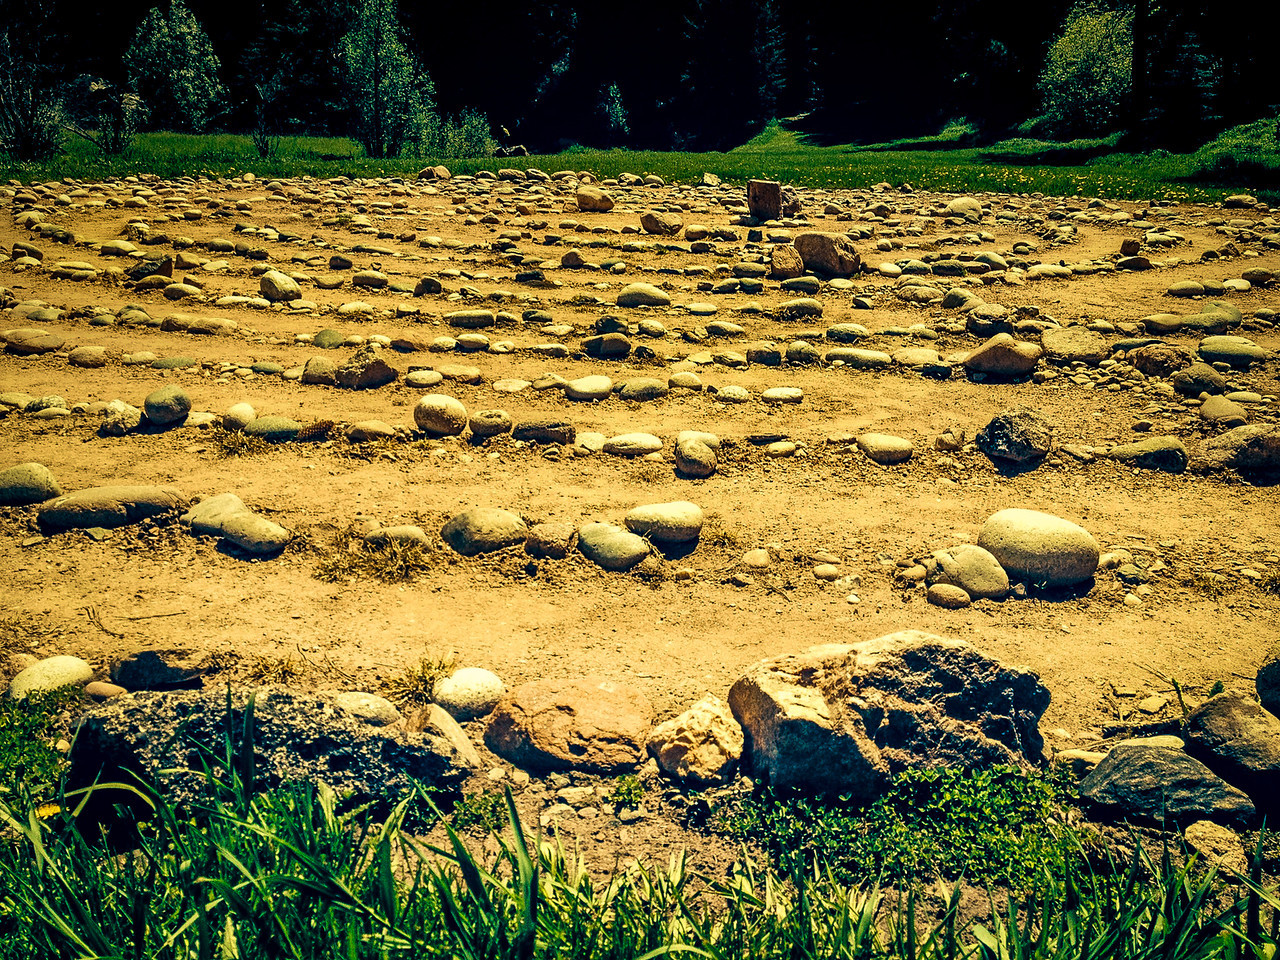 "June 7,<br /> <br /> I had the opportunity to walk a labyrinth this week. There are people who travel far to walk one and fortunately, Evergreen Episcopal Church built one for all to use.  Our Bible study group met there for a fitting finale to our study of Barbara Brown Taylor's book, ""Altars in the World"".  <br /> <br /> Labyrinths date back to ancient times.  During the Middle Ages, if one could not go on a pilgrimage to Jerusalem, walking a labyrinth in a church was the best substitute for this spiritual experience.  Today labyrinths can be used as walking meditations in order to focus the mind and provide a spiritual connection.  <br /> Labyrinths have a beginning and a center.  Once the center is reached, the walker returns from where they came to reach the beginning or exit.  There are many ways to walk this ancient pattern. <br /> One may focus thoughts on a question or concern.  One may walk with a quiet mind, sensing the pattern.  One may walk it with some of its symbolic meanings as seeds of thoughts. One may walk it with a heavy heart in need of peace.  There is no single right way to follow the path.<br /> <br /> It was a beautiful experience and one that I will do again.  I am filled with sheer thankfulness that Evergreen has one and that our church will be building one soon.  It is a blessing to live in such a community. <br />   ""Nothing is worth more than this day."" ~ Johann Wolfgang von Goethe<br /> Peace"